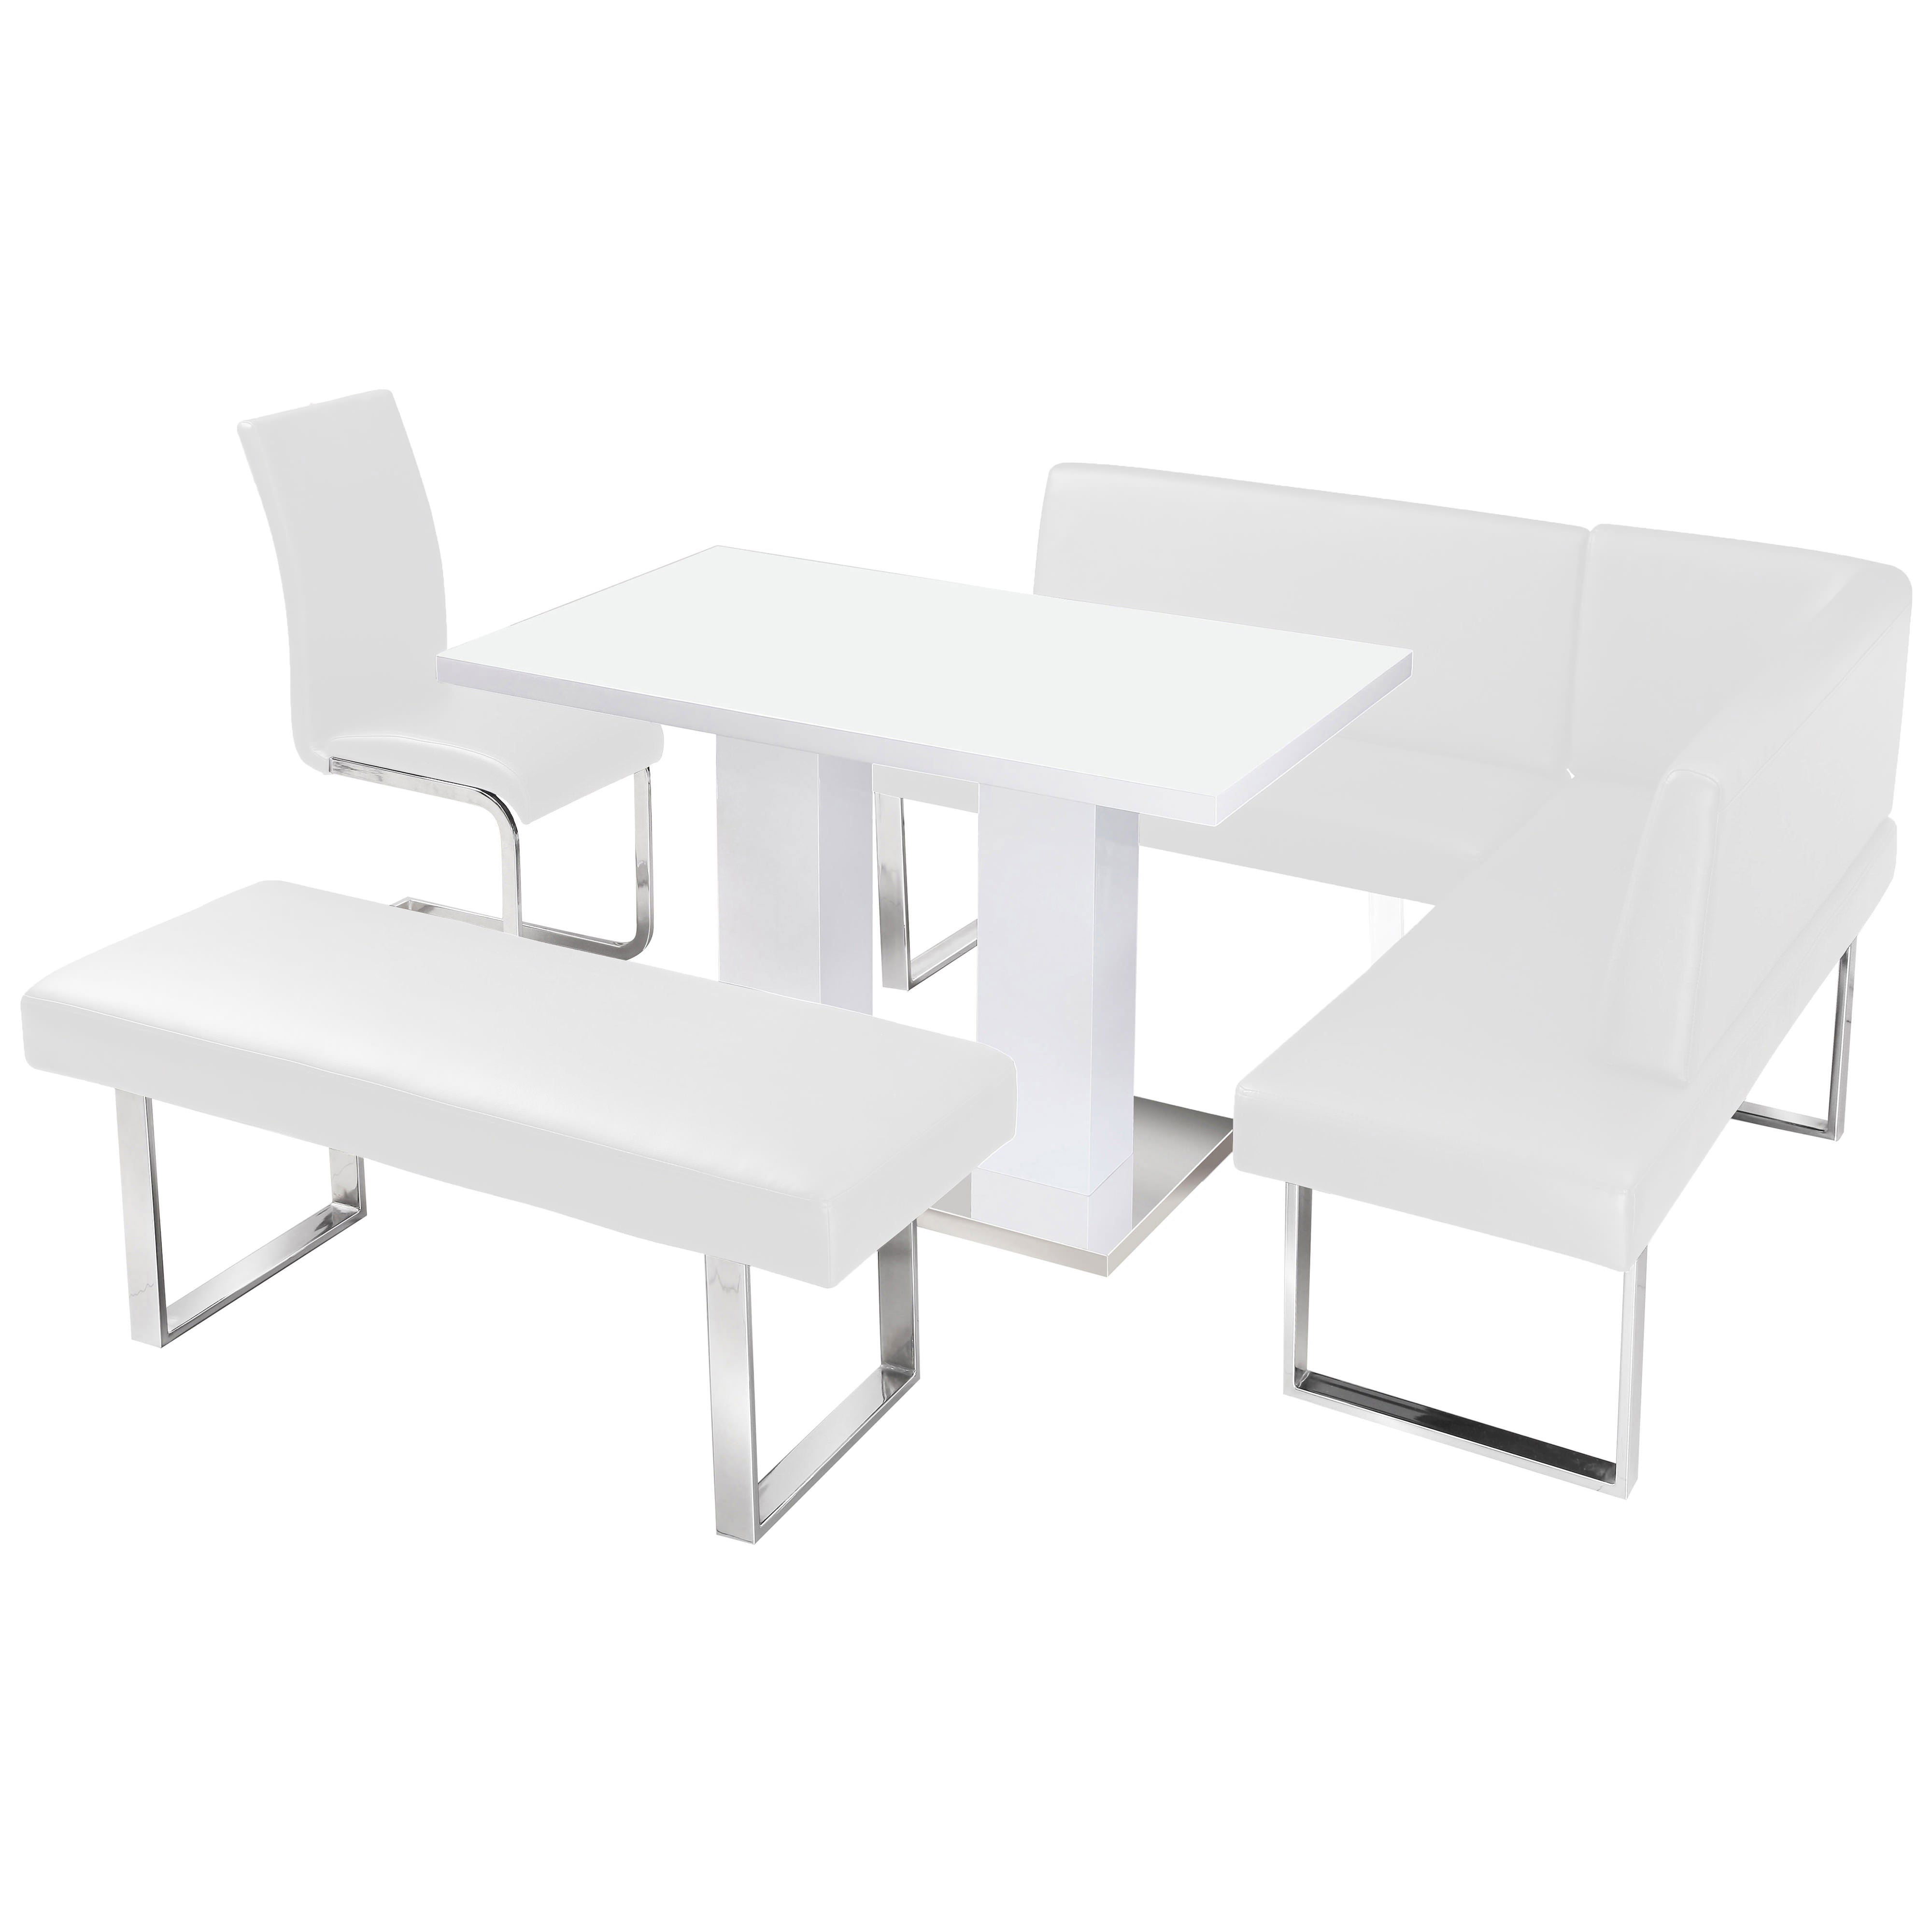 Stupendous High Gloss Dining Table And Chair Set With Corner Bench 1 Unemploymentrelief Wooden Chair Designs For Living Room Unemploymentrelieforg